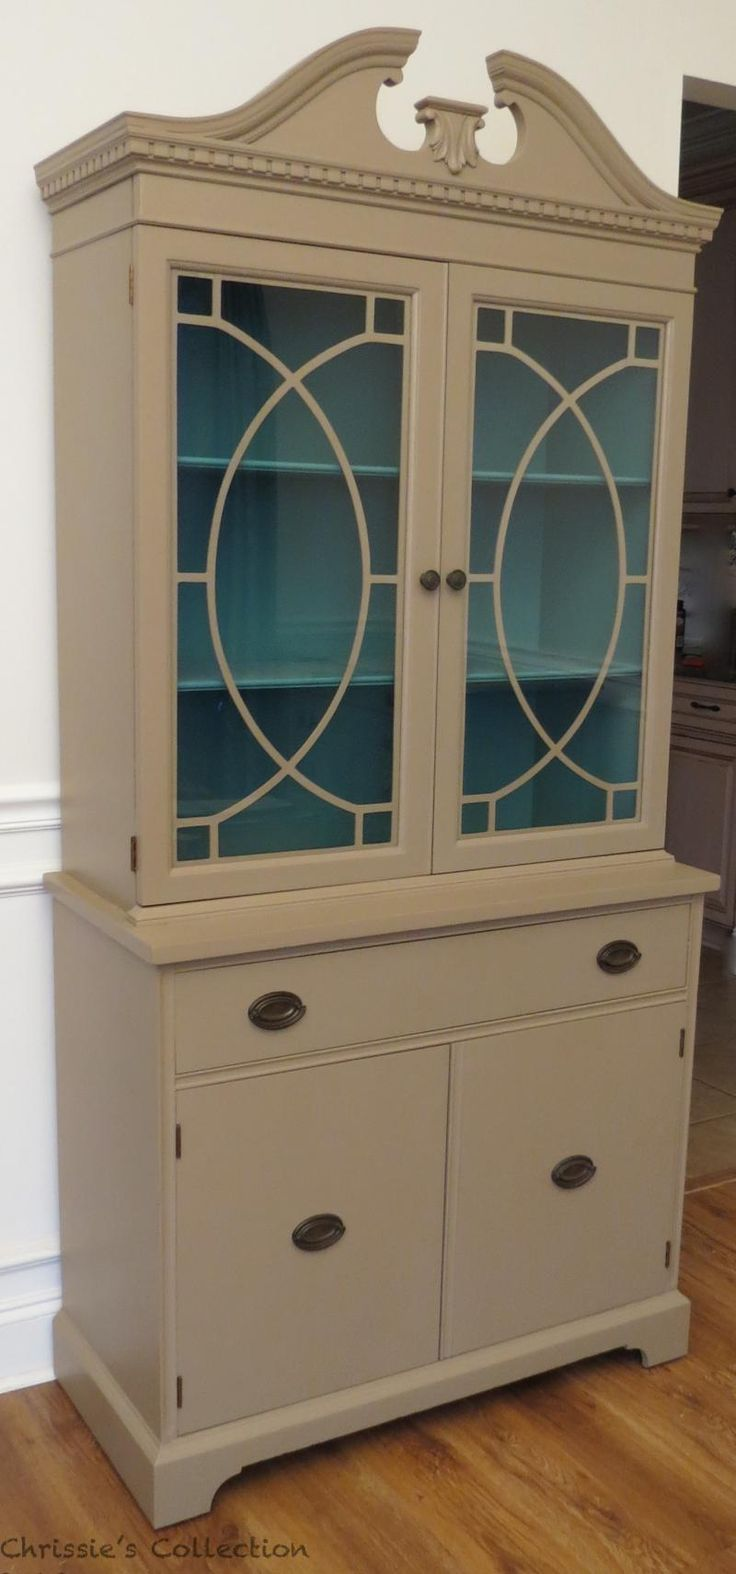 17 best images about sewing cabinet color ideas on for Painted dining room hutch ideas